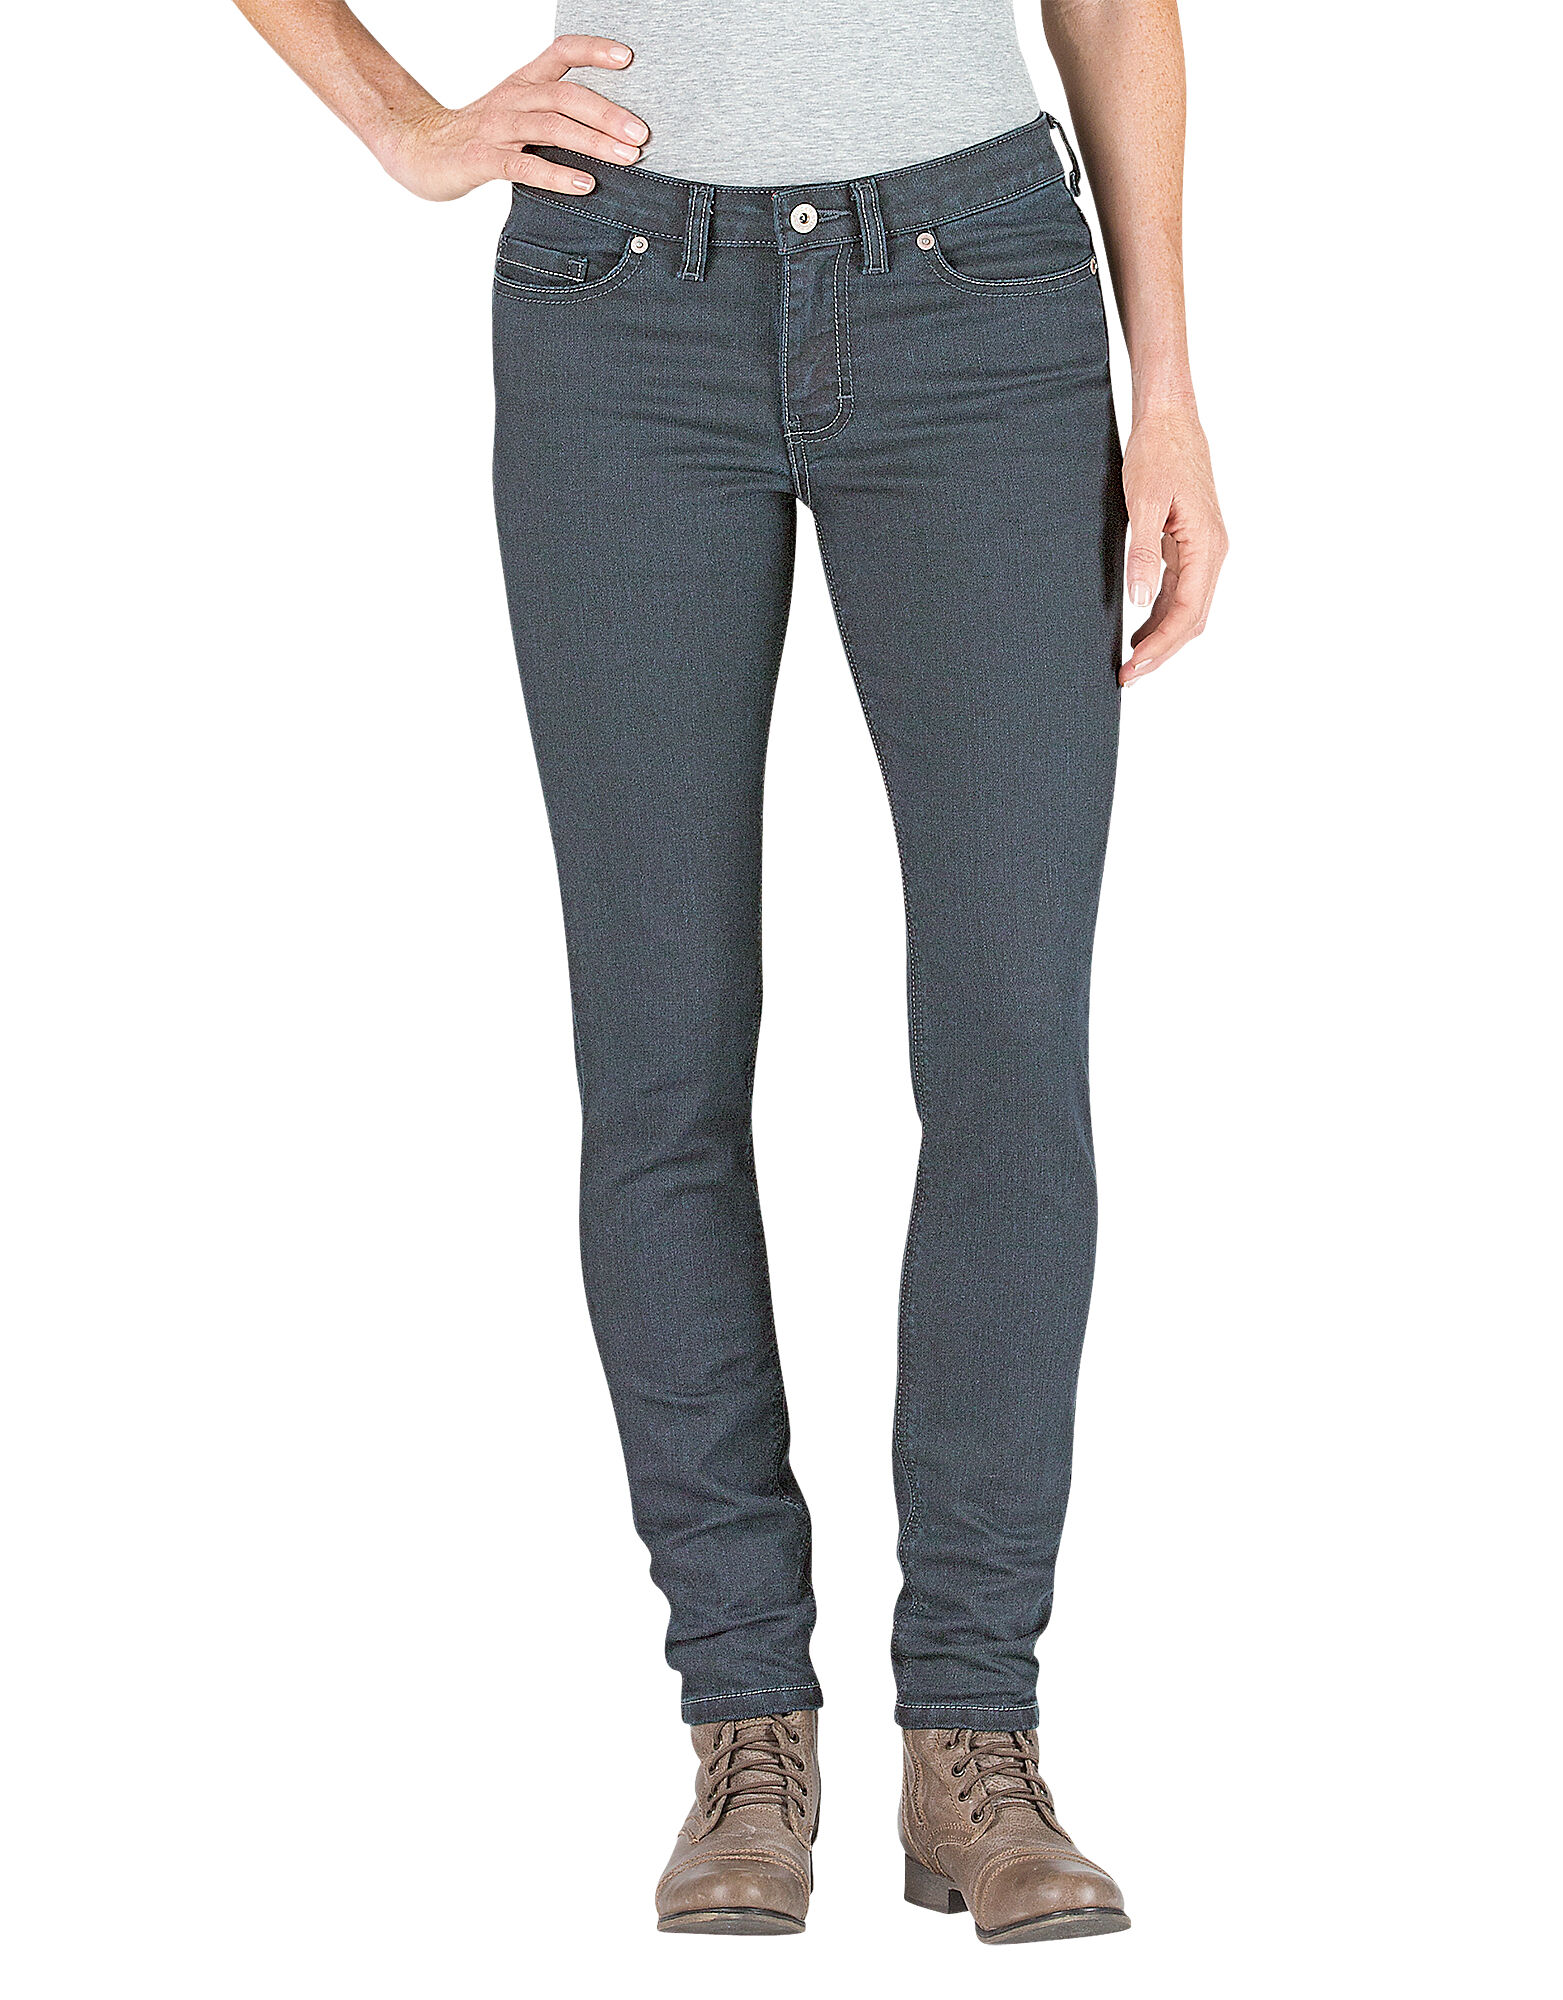 Where To Buy Jeans For Women